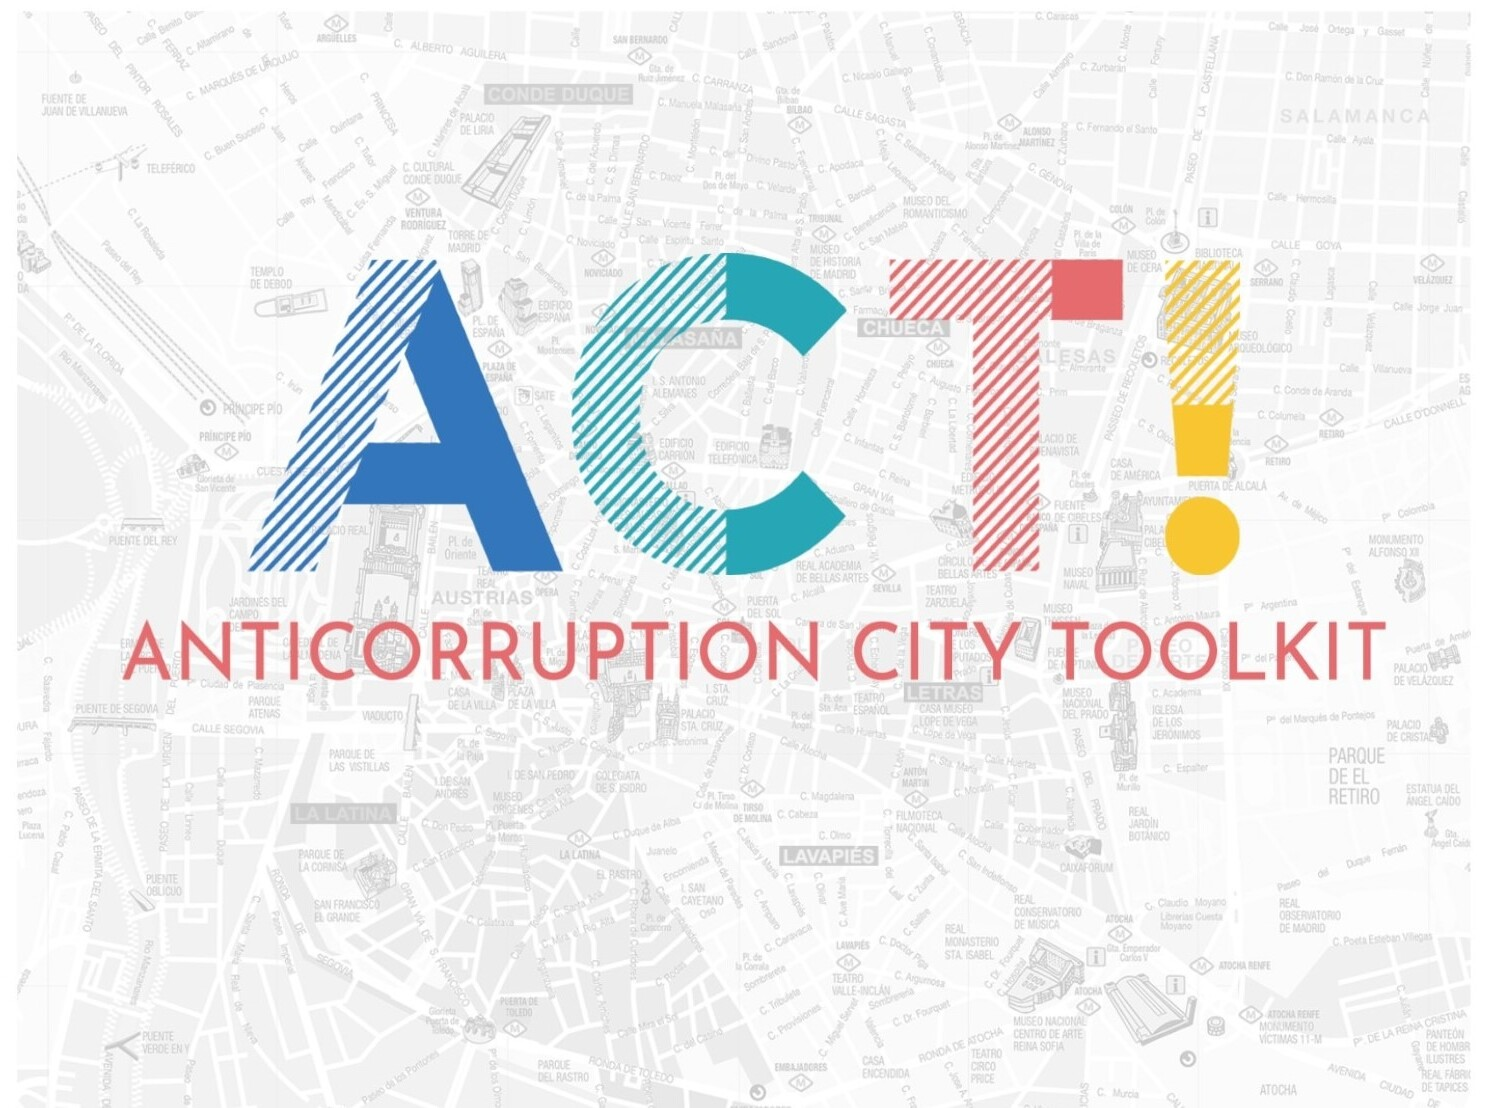 ACT! Project: 5 solutions for local governments to prevent and fight corruption